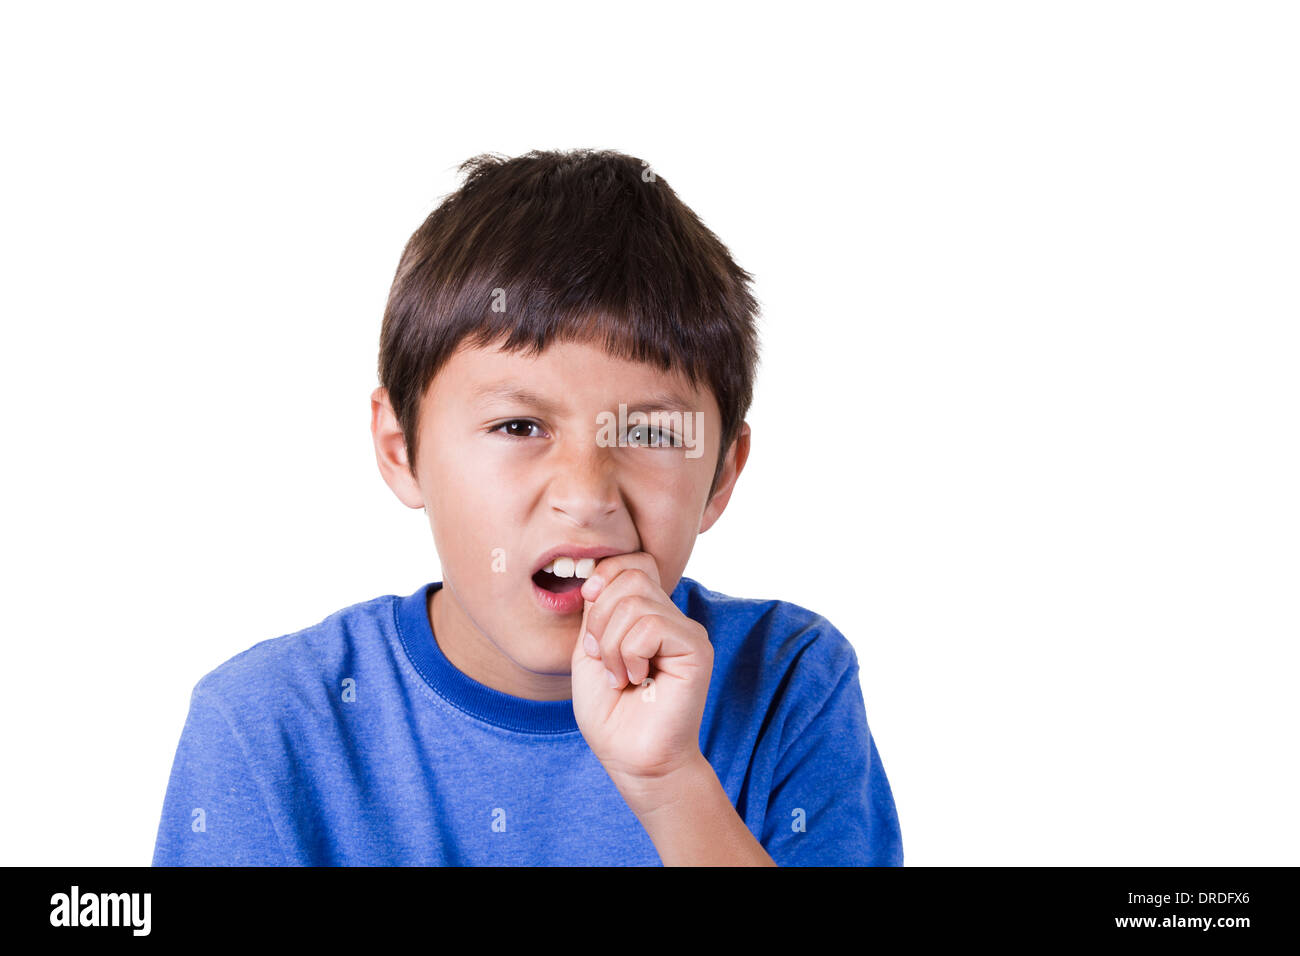 Boy with toothache or loose tooth - Stock Image